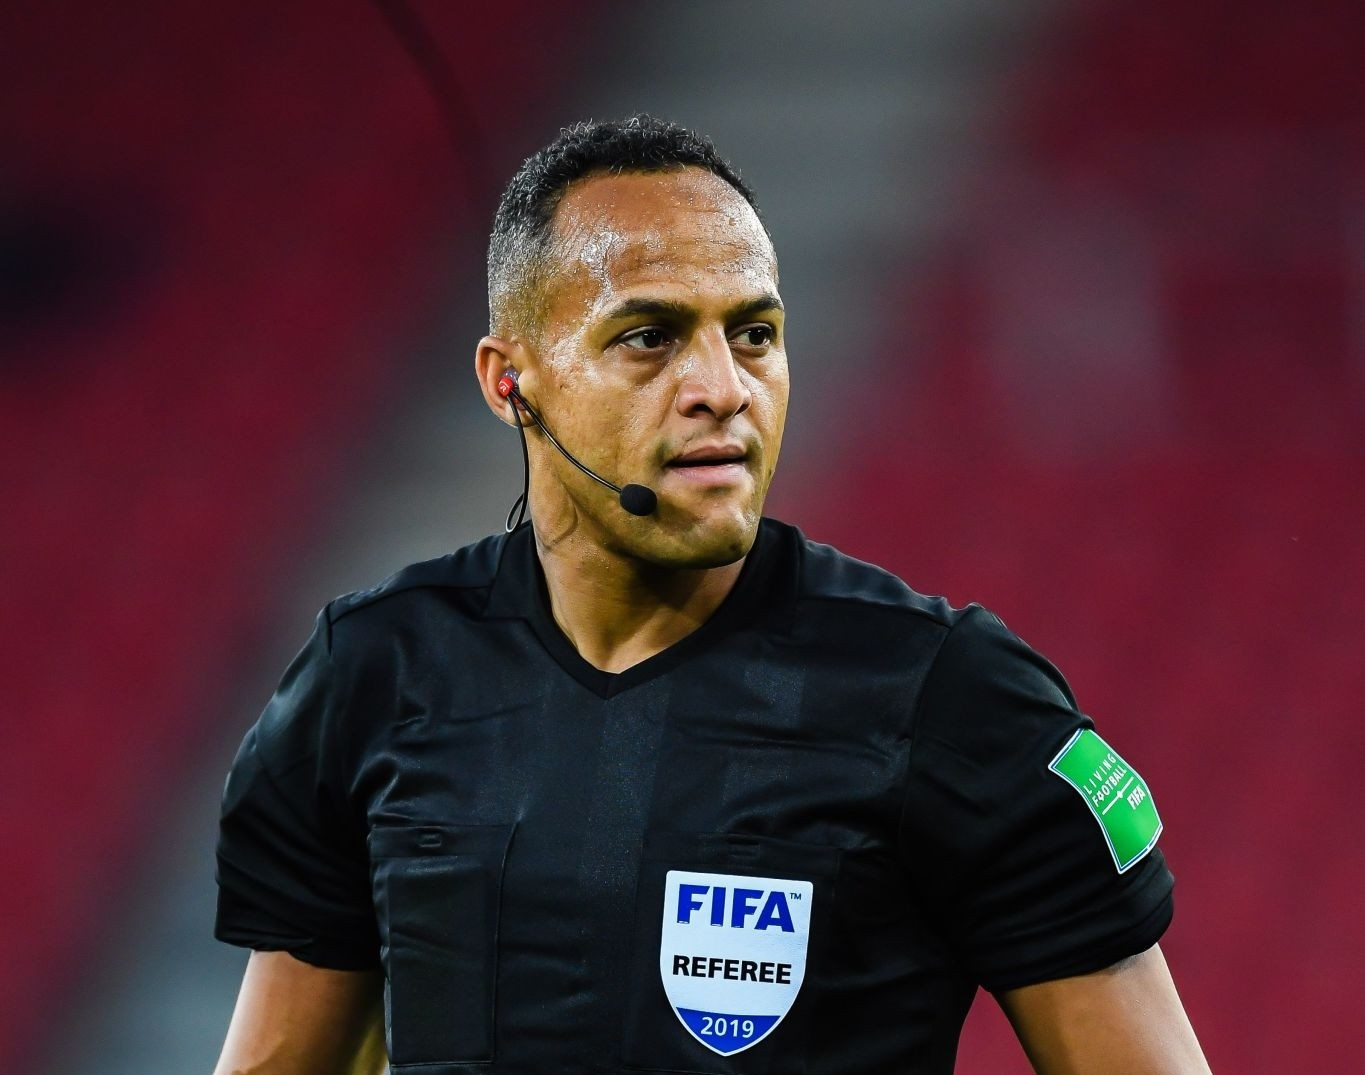 FIFA referee Ismail Elfath